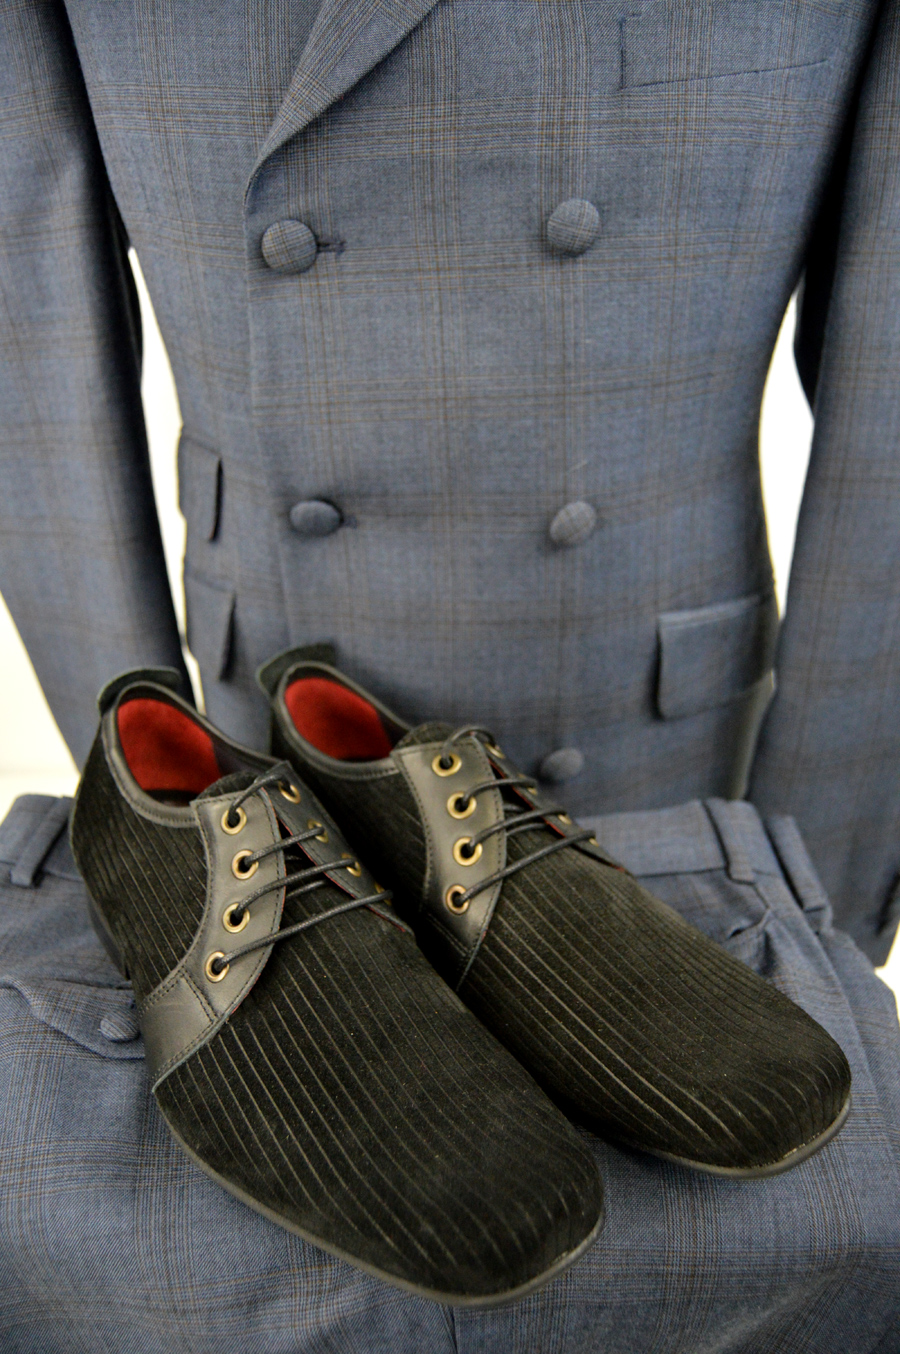 modshoes-exclusive-corded-shoes-with-mod-suit-from-adaptor-clothing-04